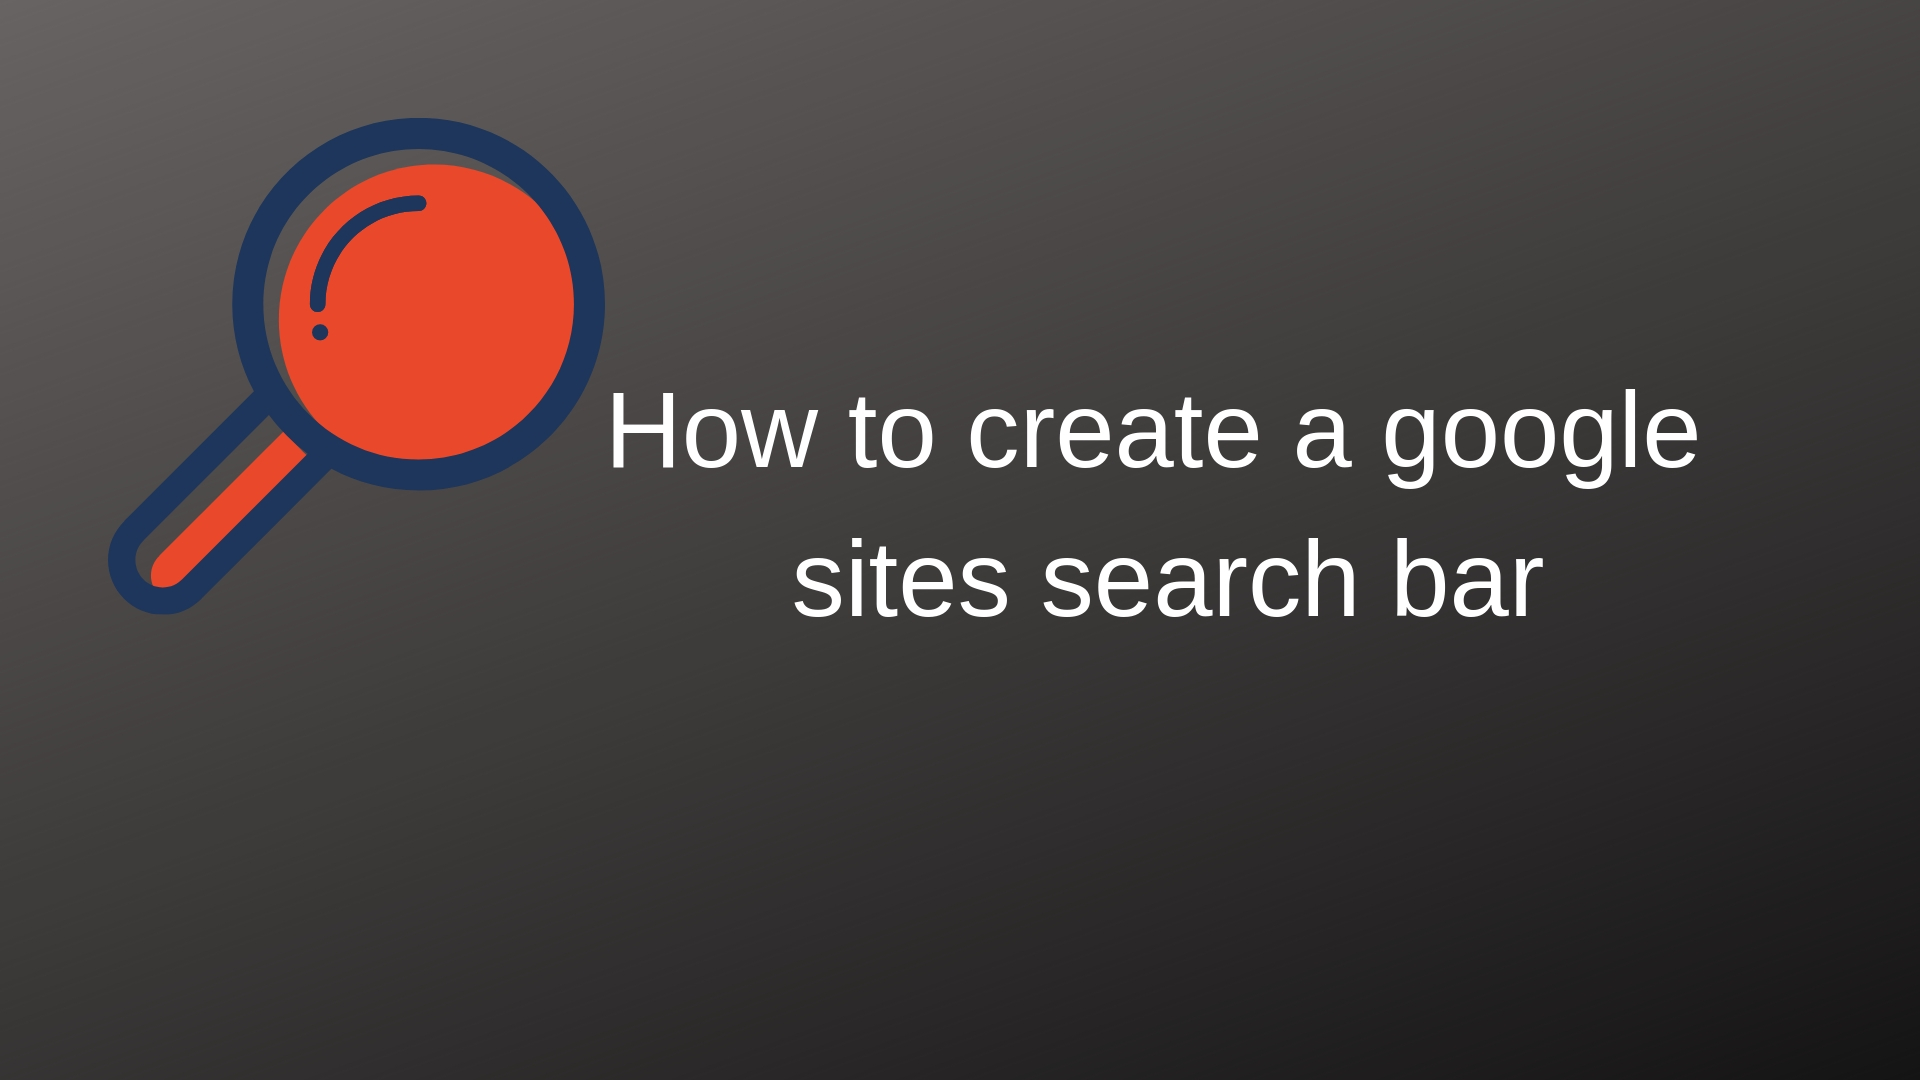 How to create a google sites search bar